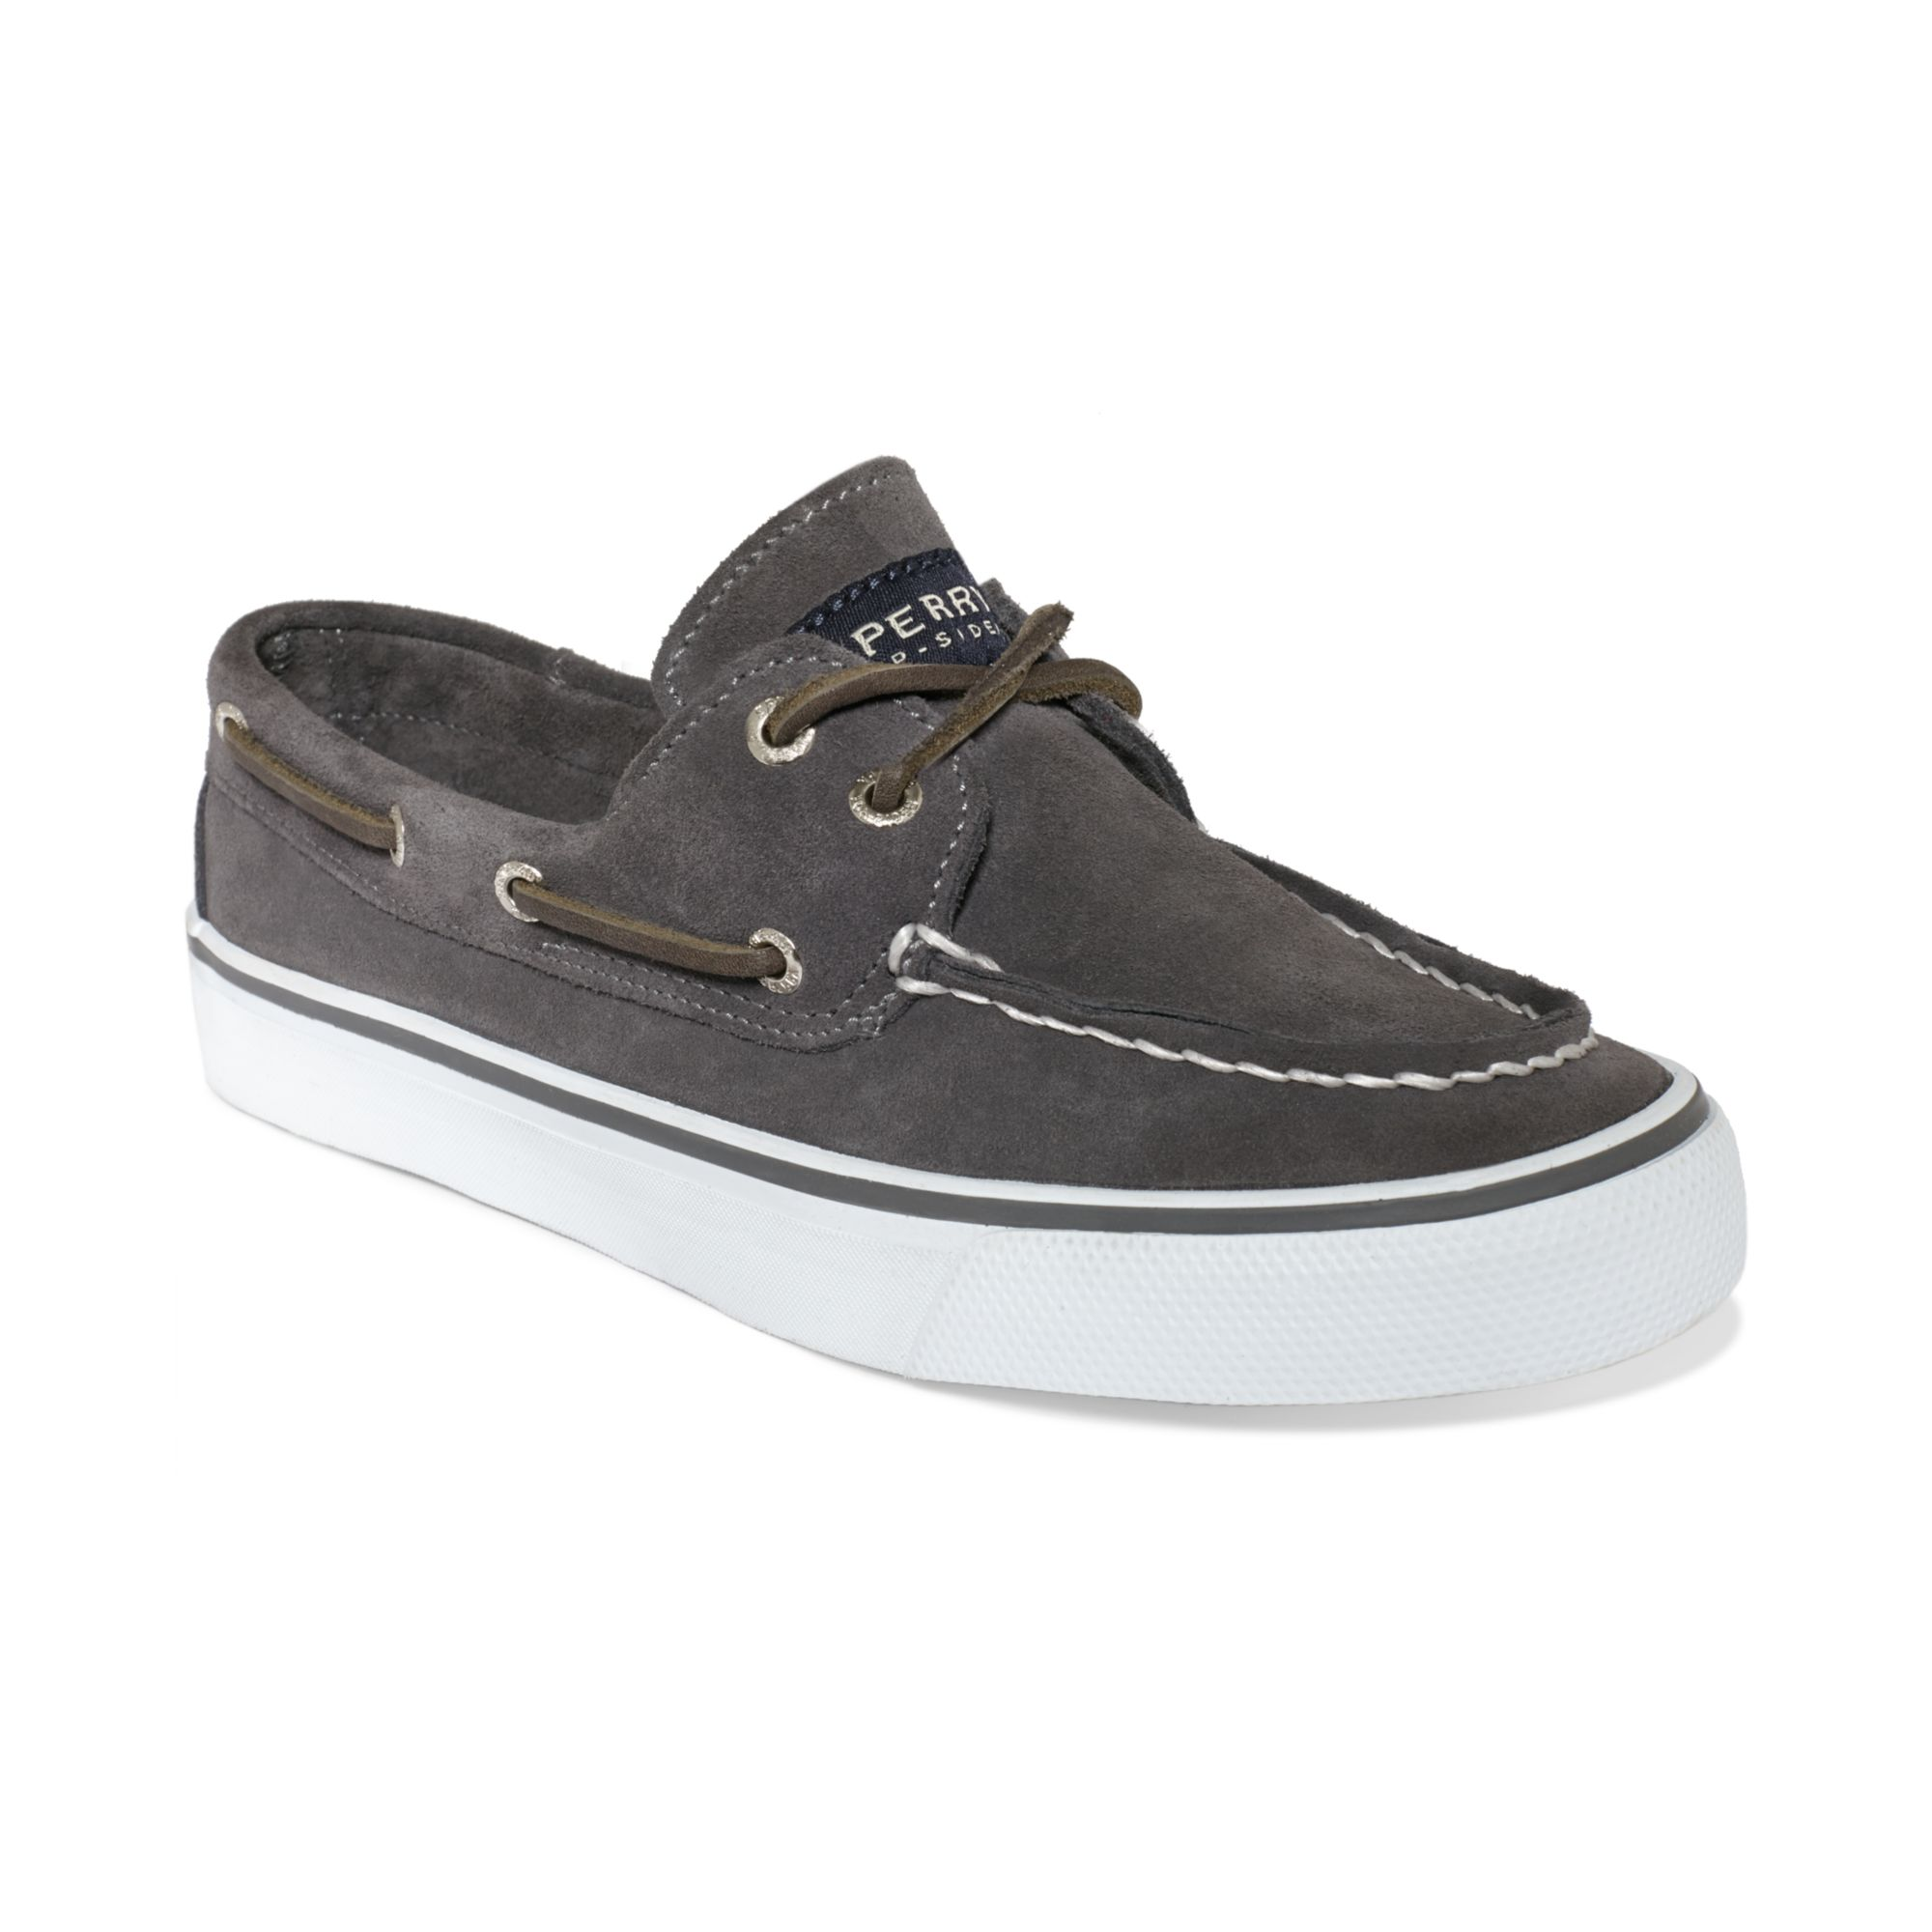 Sperry Top Sider Bahama Suede Boat Shoes